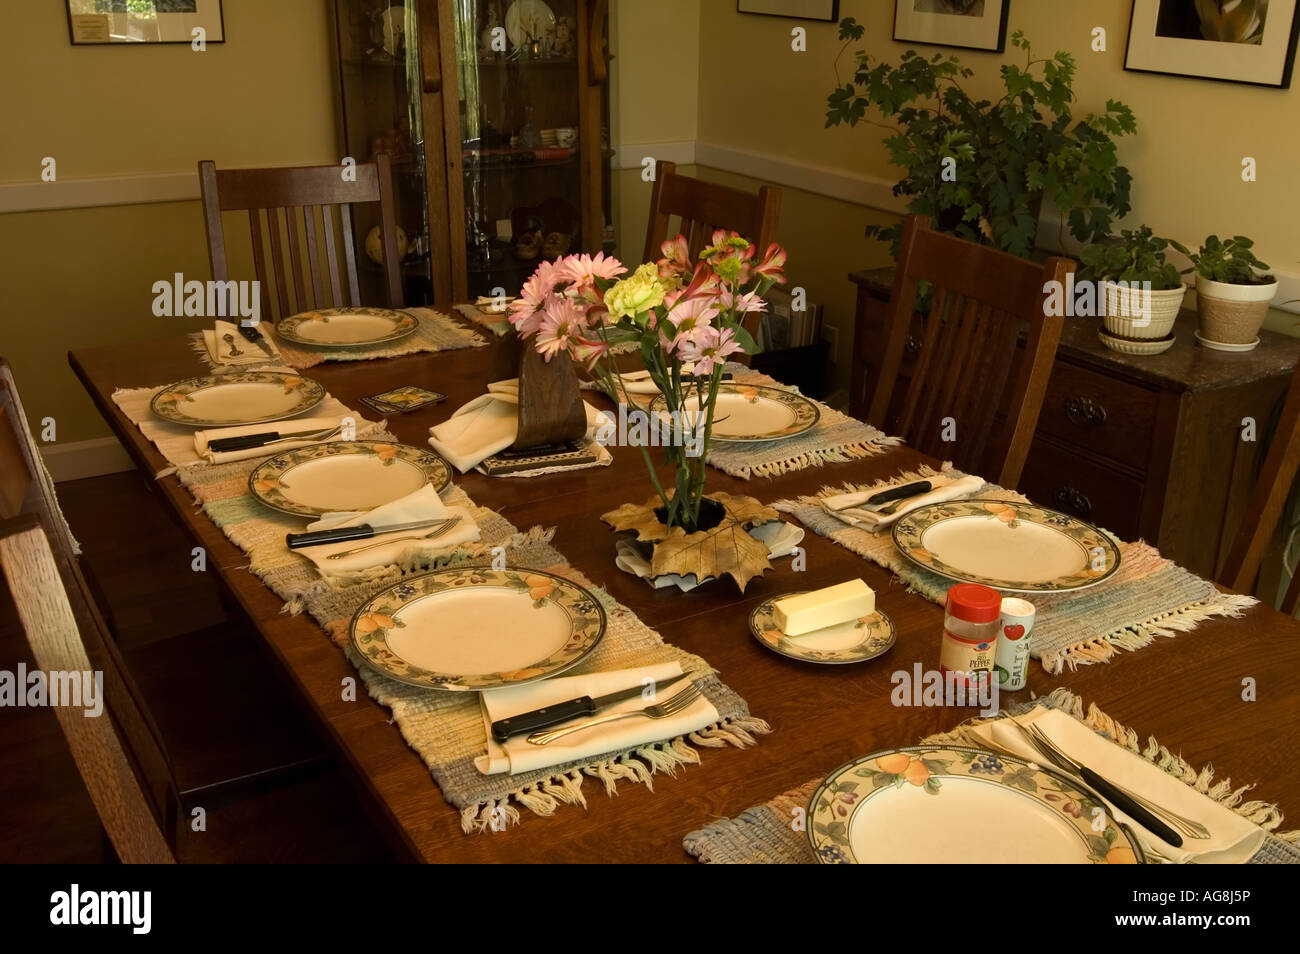 Dining Room Table Set Up For Meal